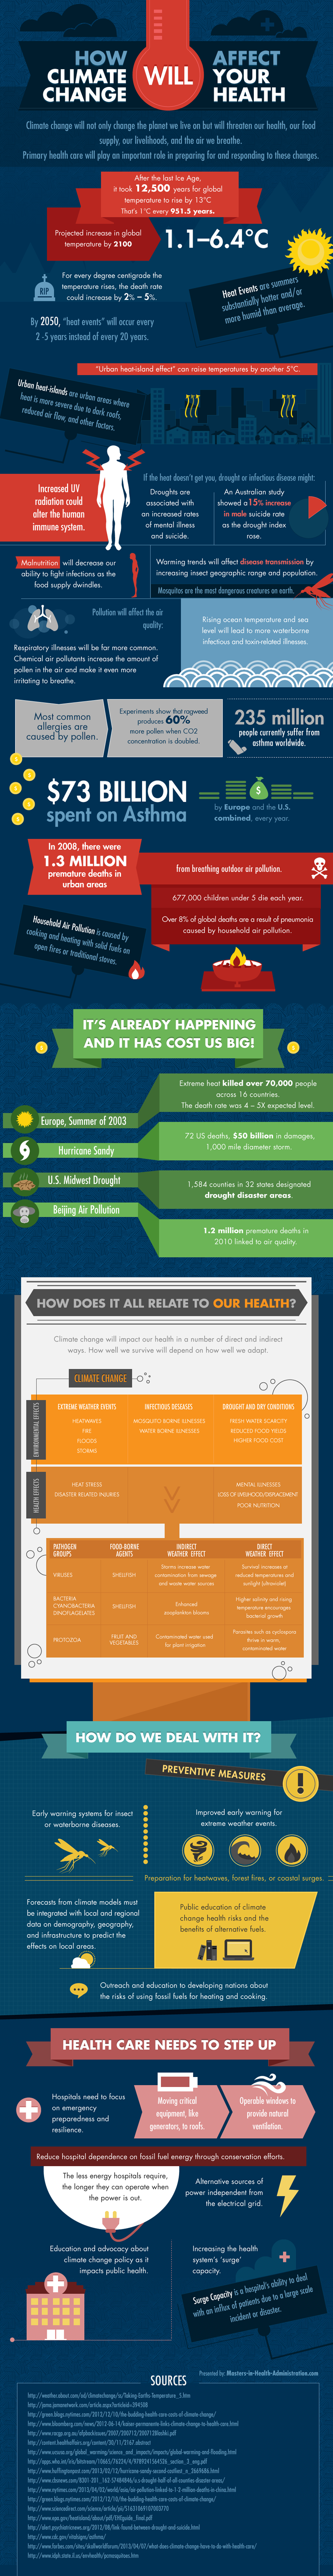 MHA_Health Effects Infographic_0